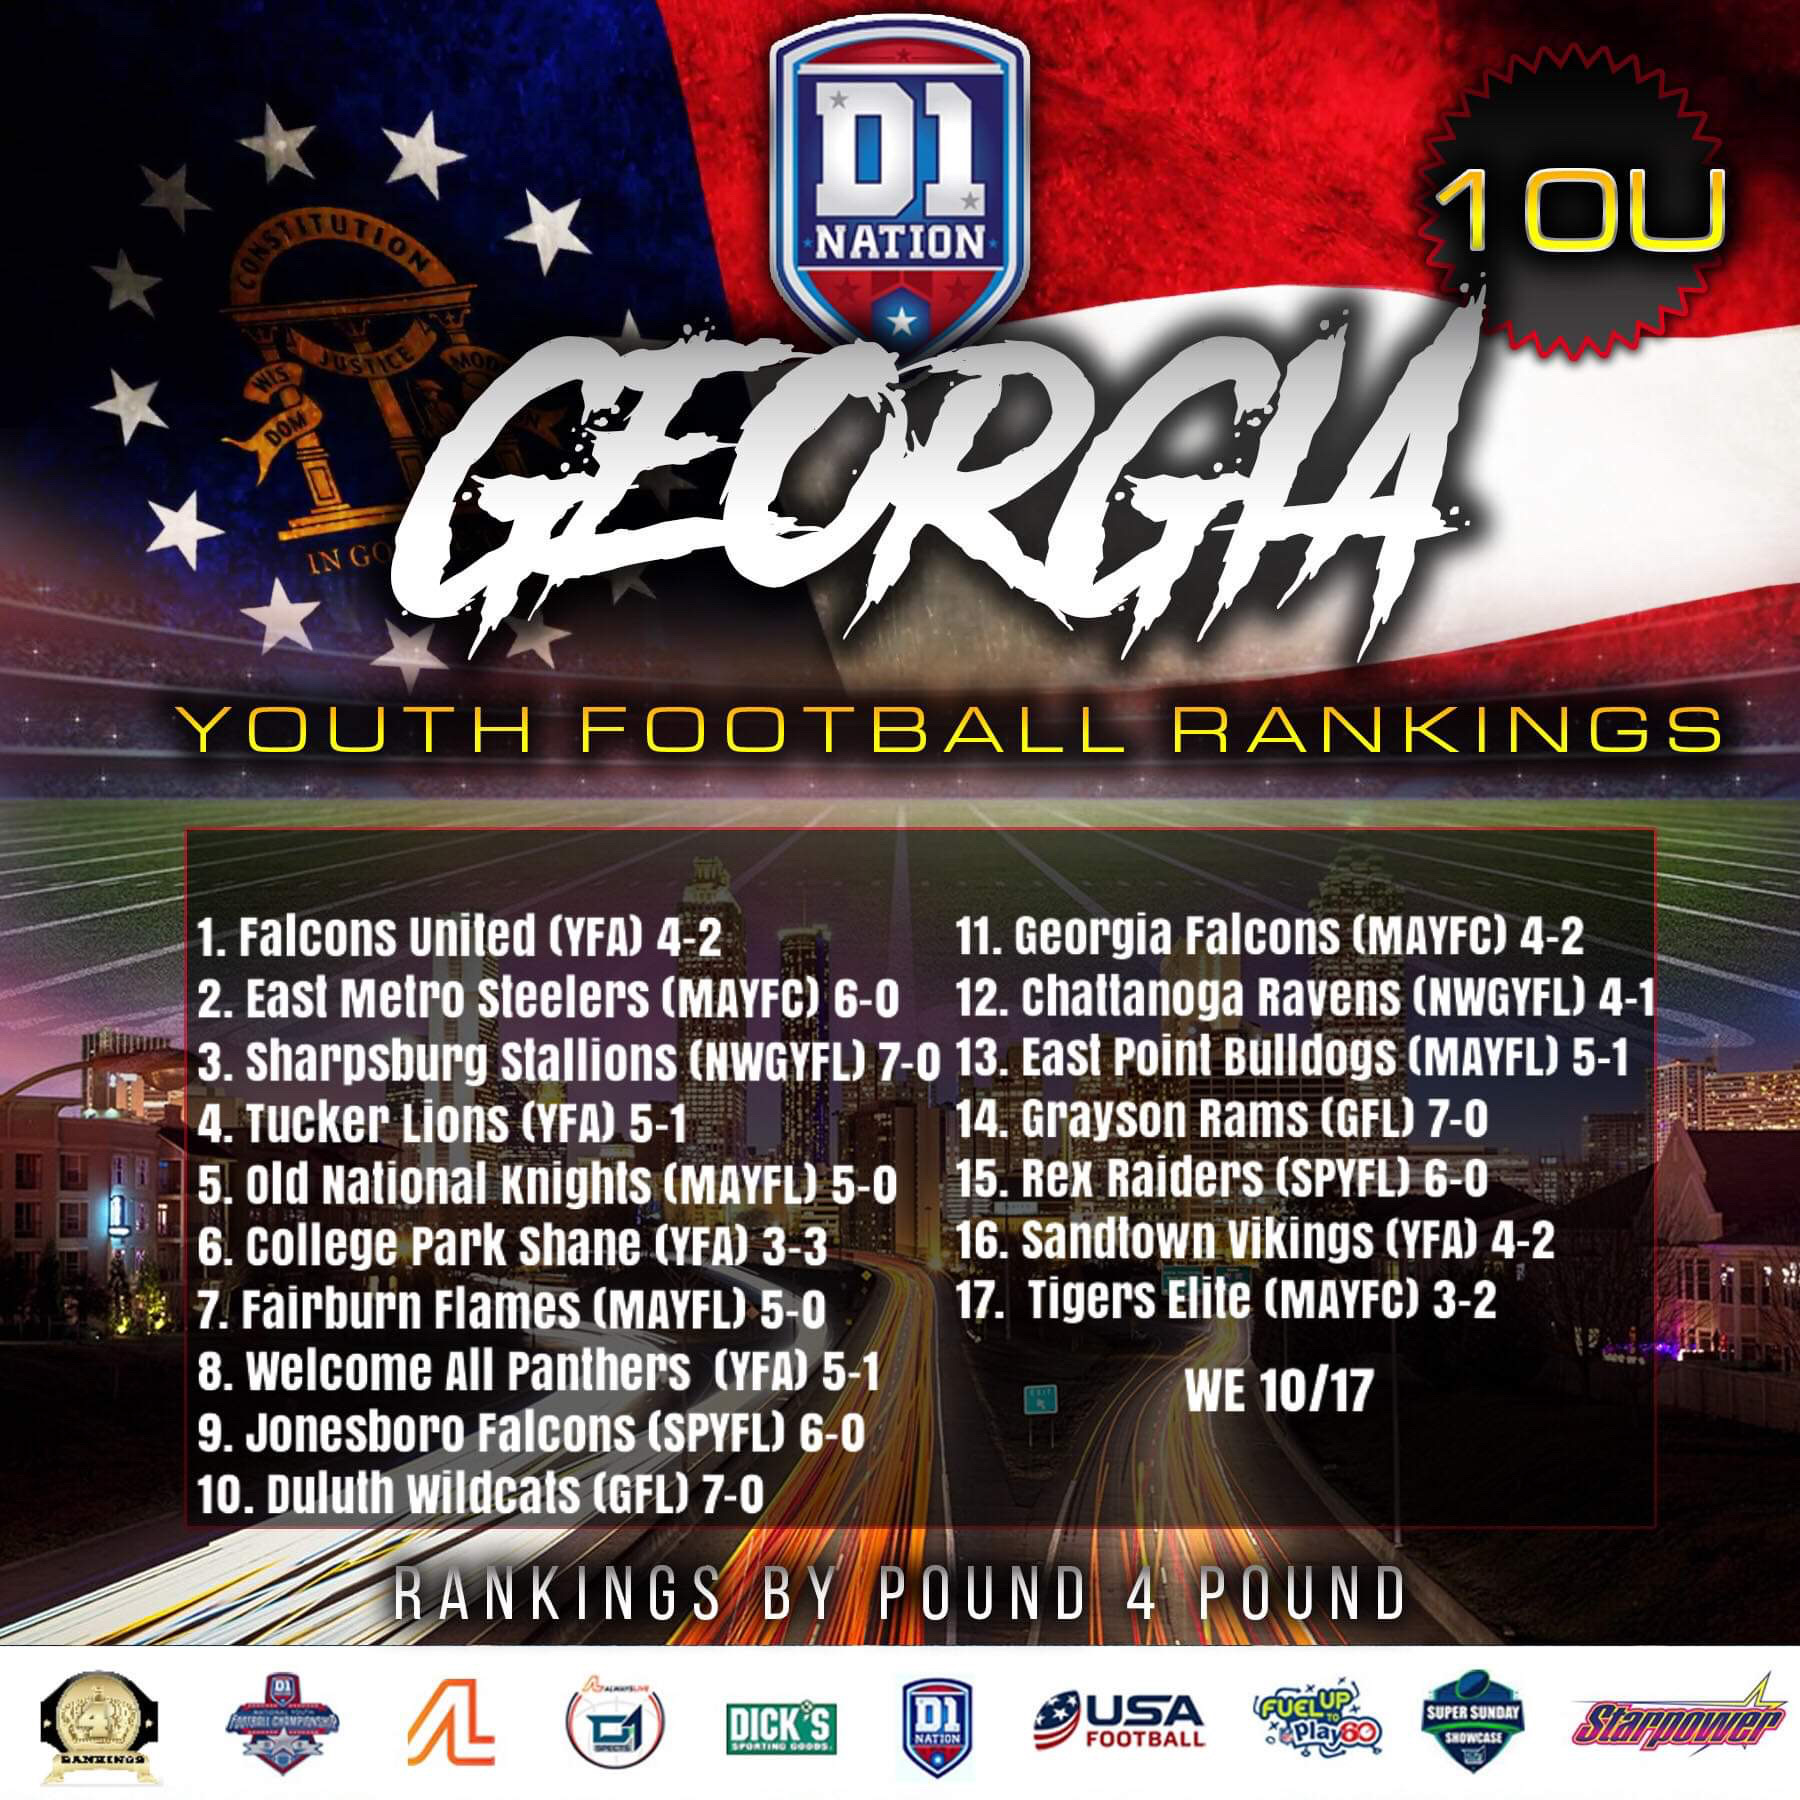 Update 10/21/2019: Georgia Youth Football Rankings – 10U